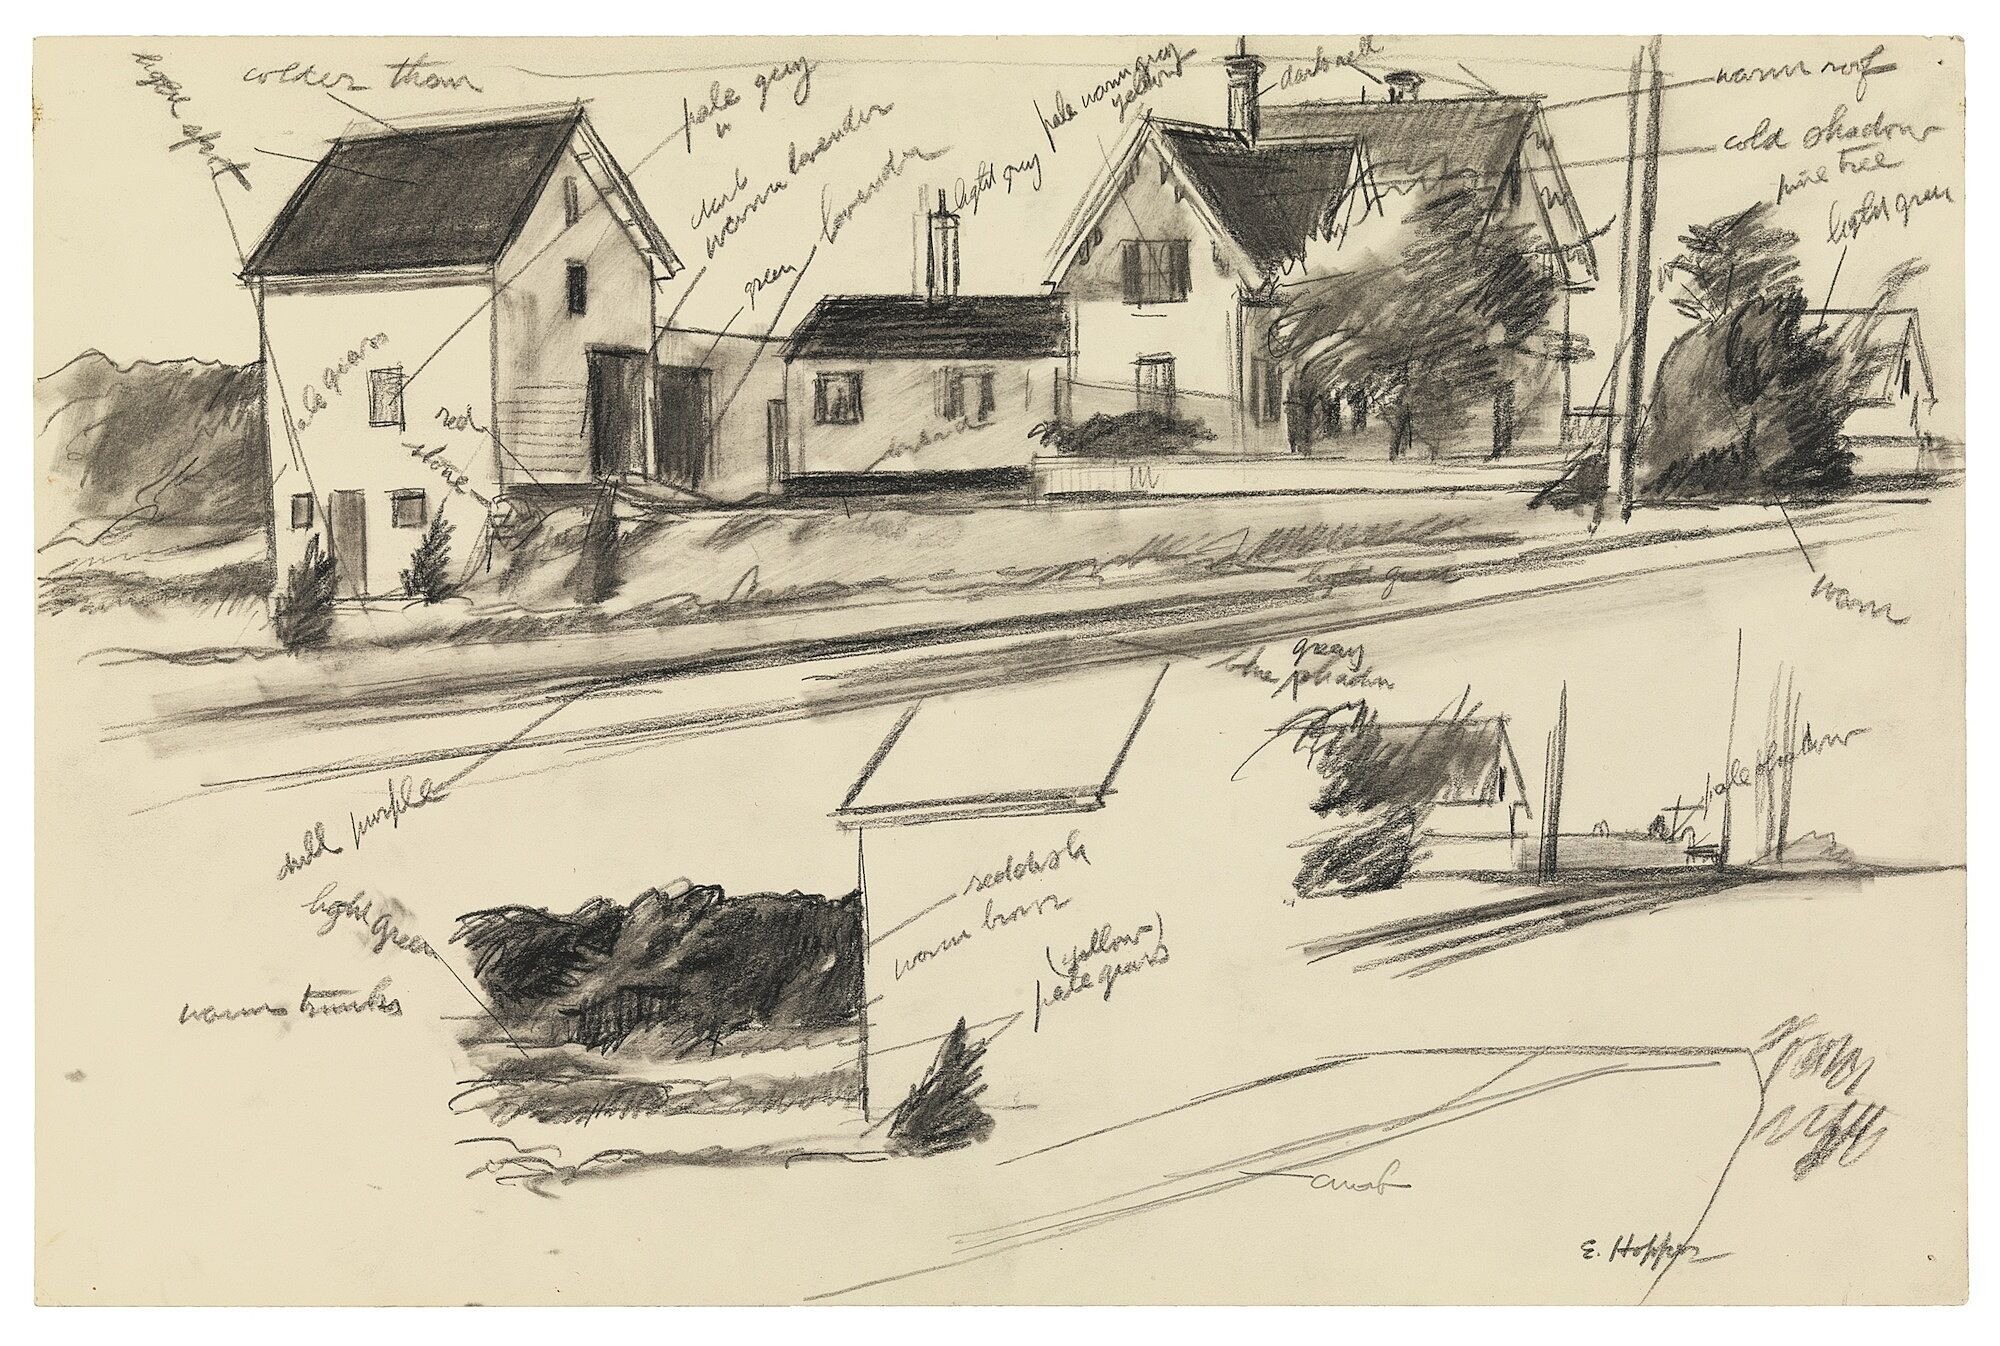 A sketch drawing of houses.